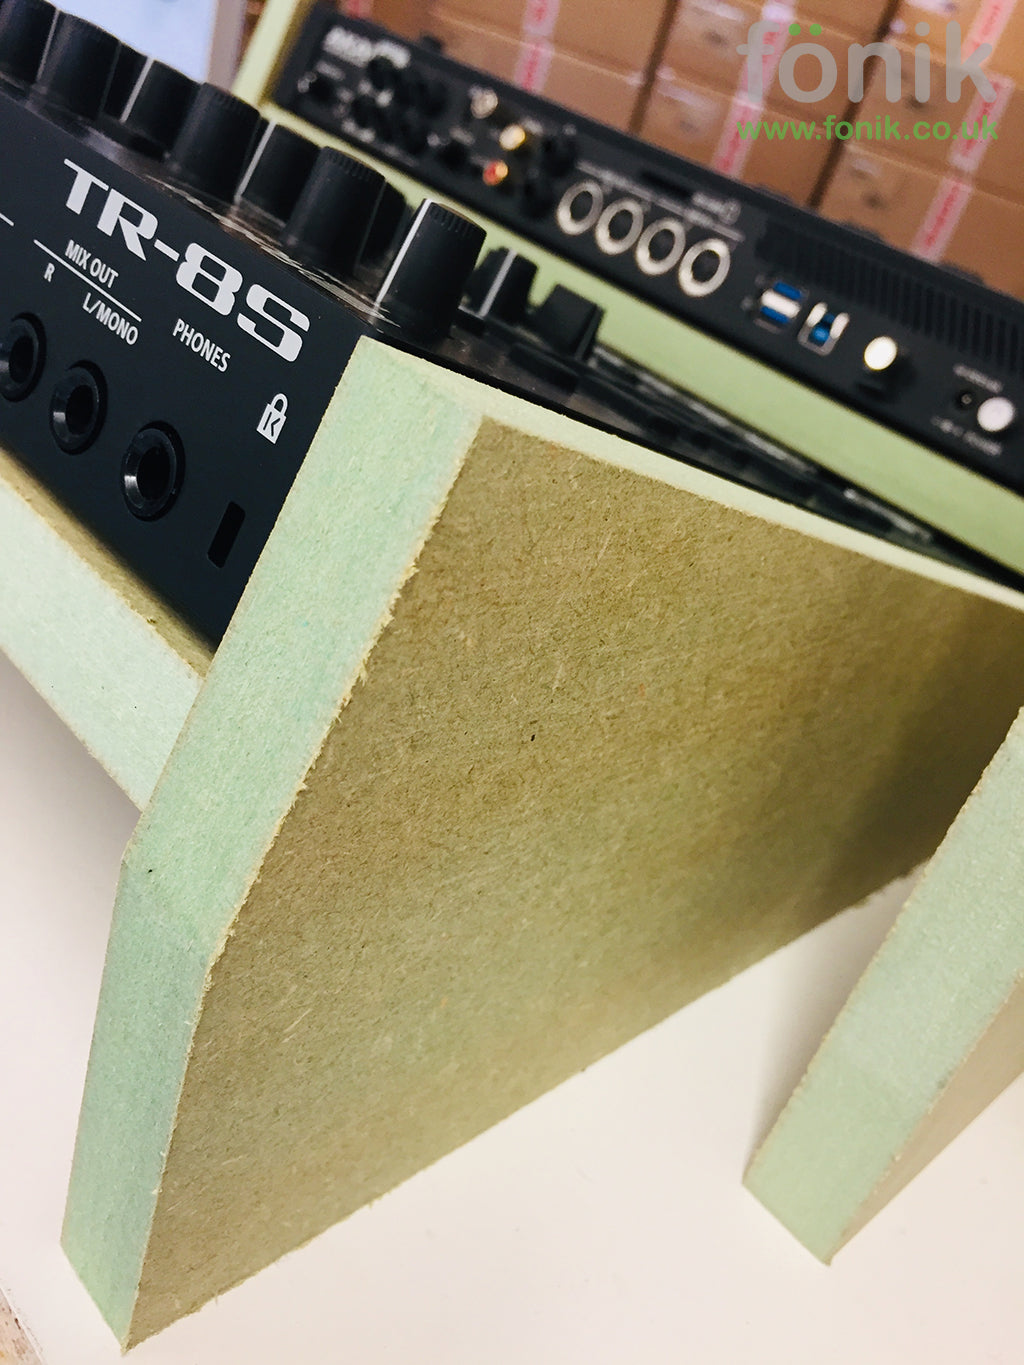 fonik stand for roland tr-8s in manufacture